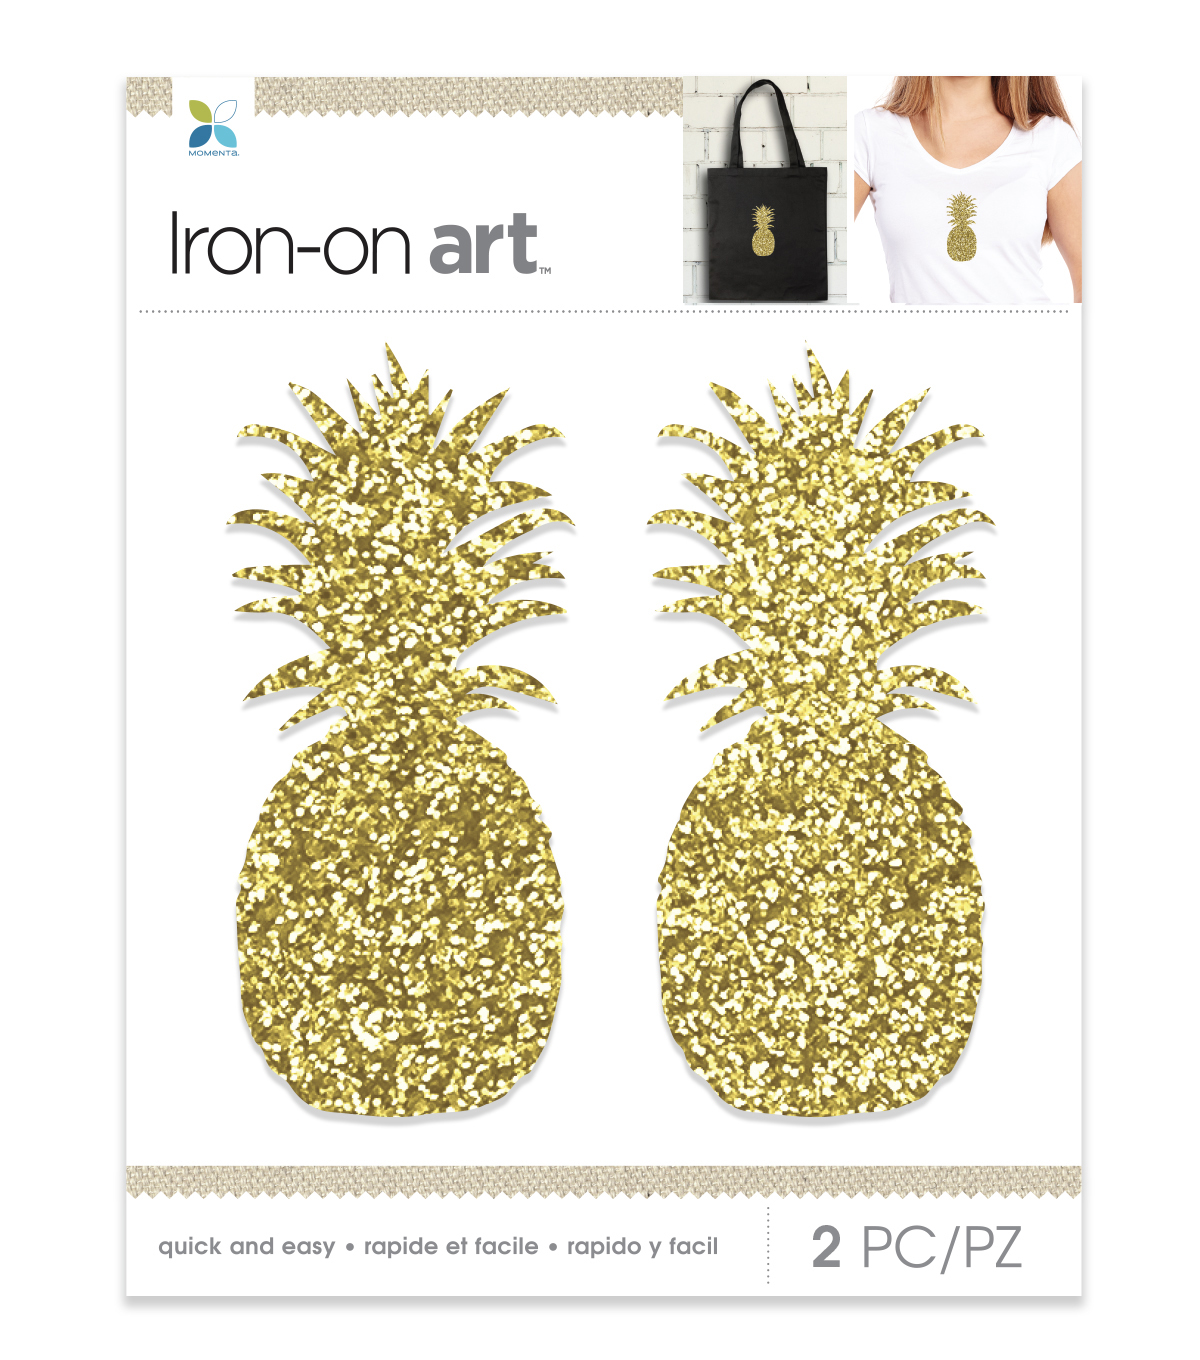 Momenta 2 pk Pineapples Chunky Glitter Iron-on Art-Gold